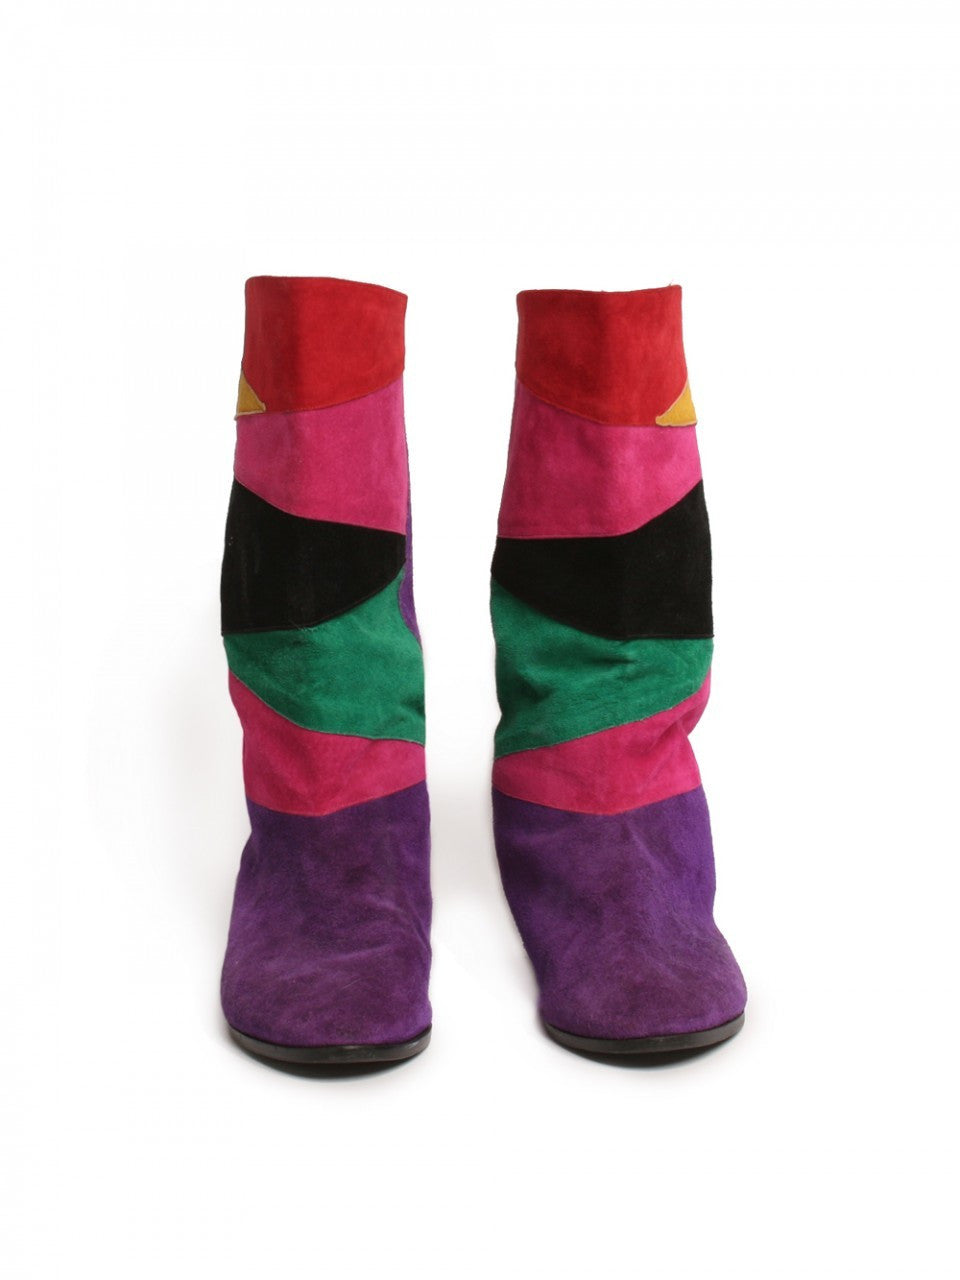 1980s Suede Patchwork Boots